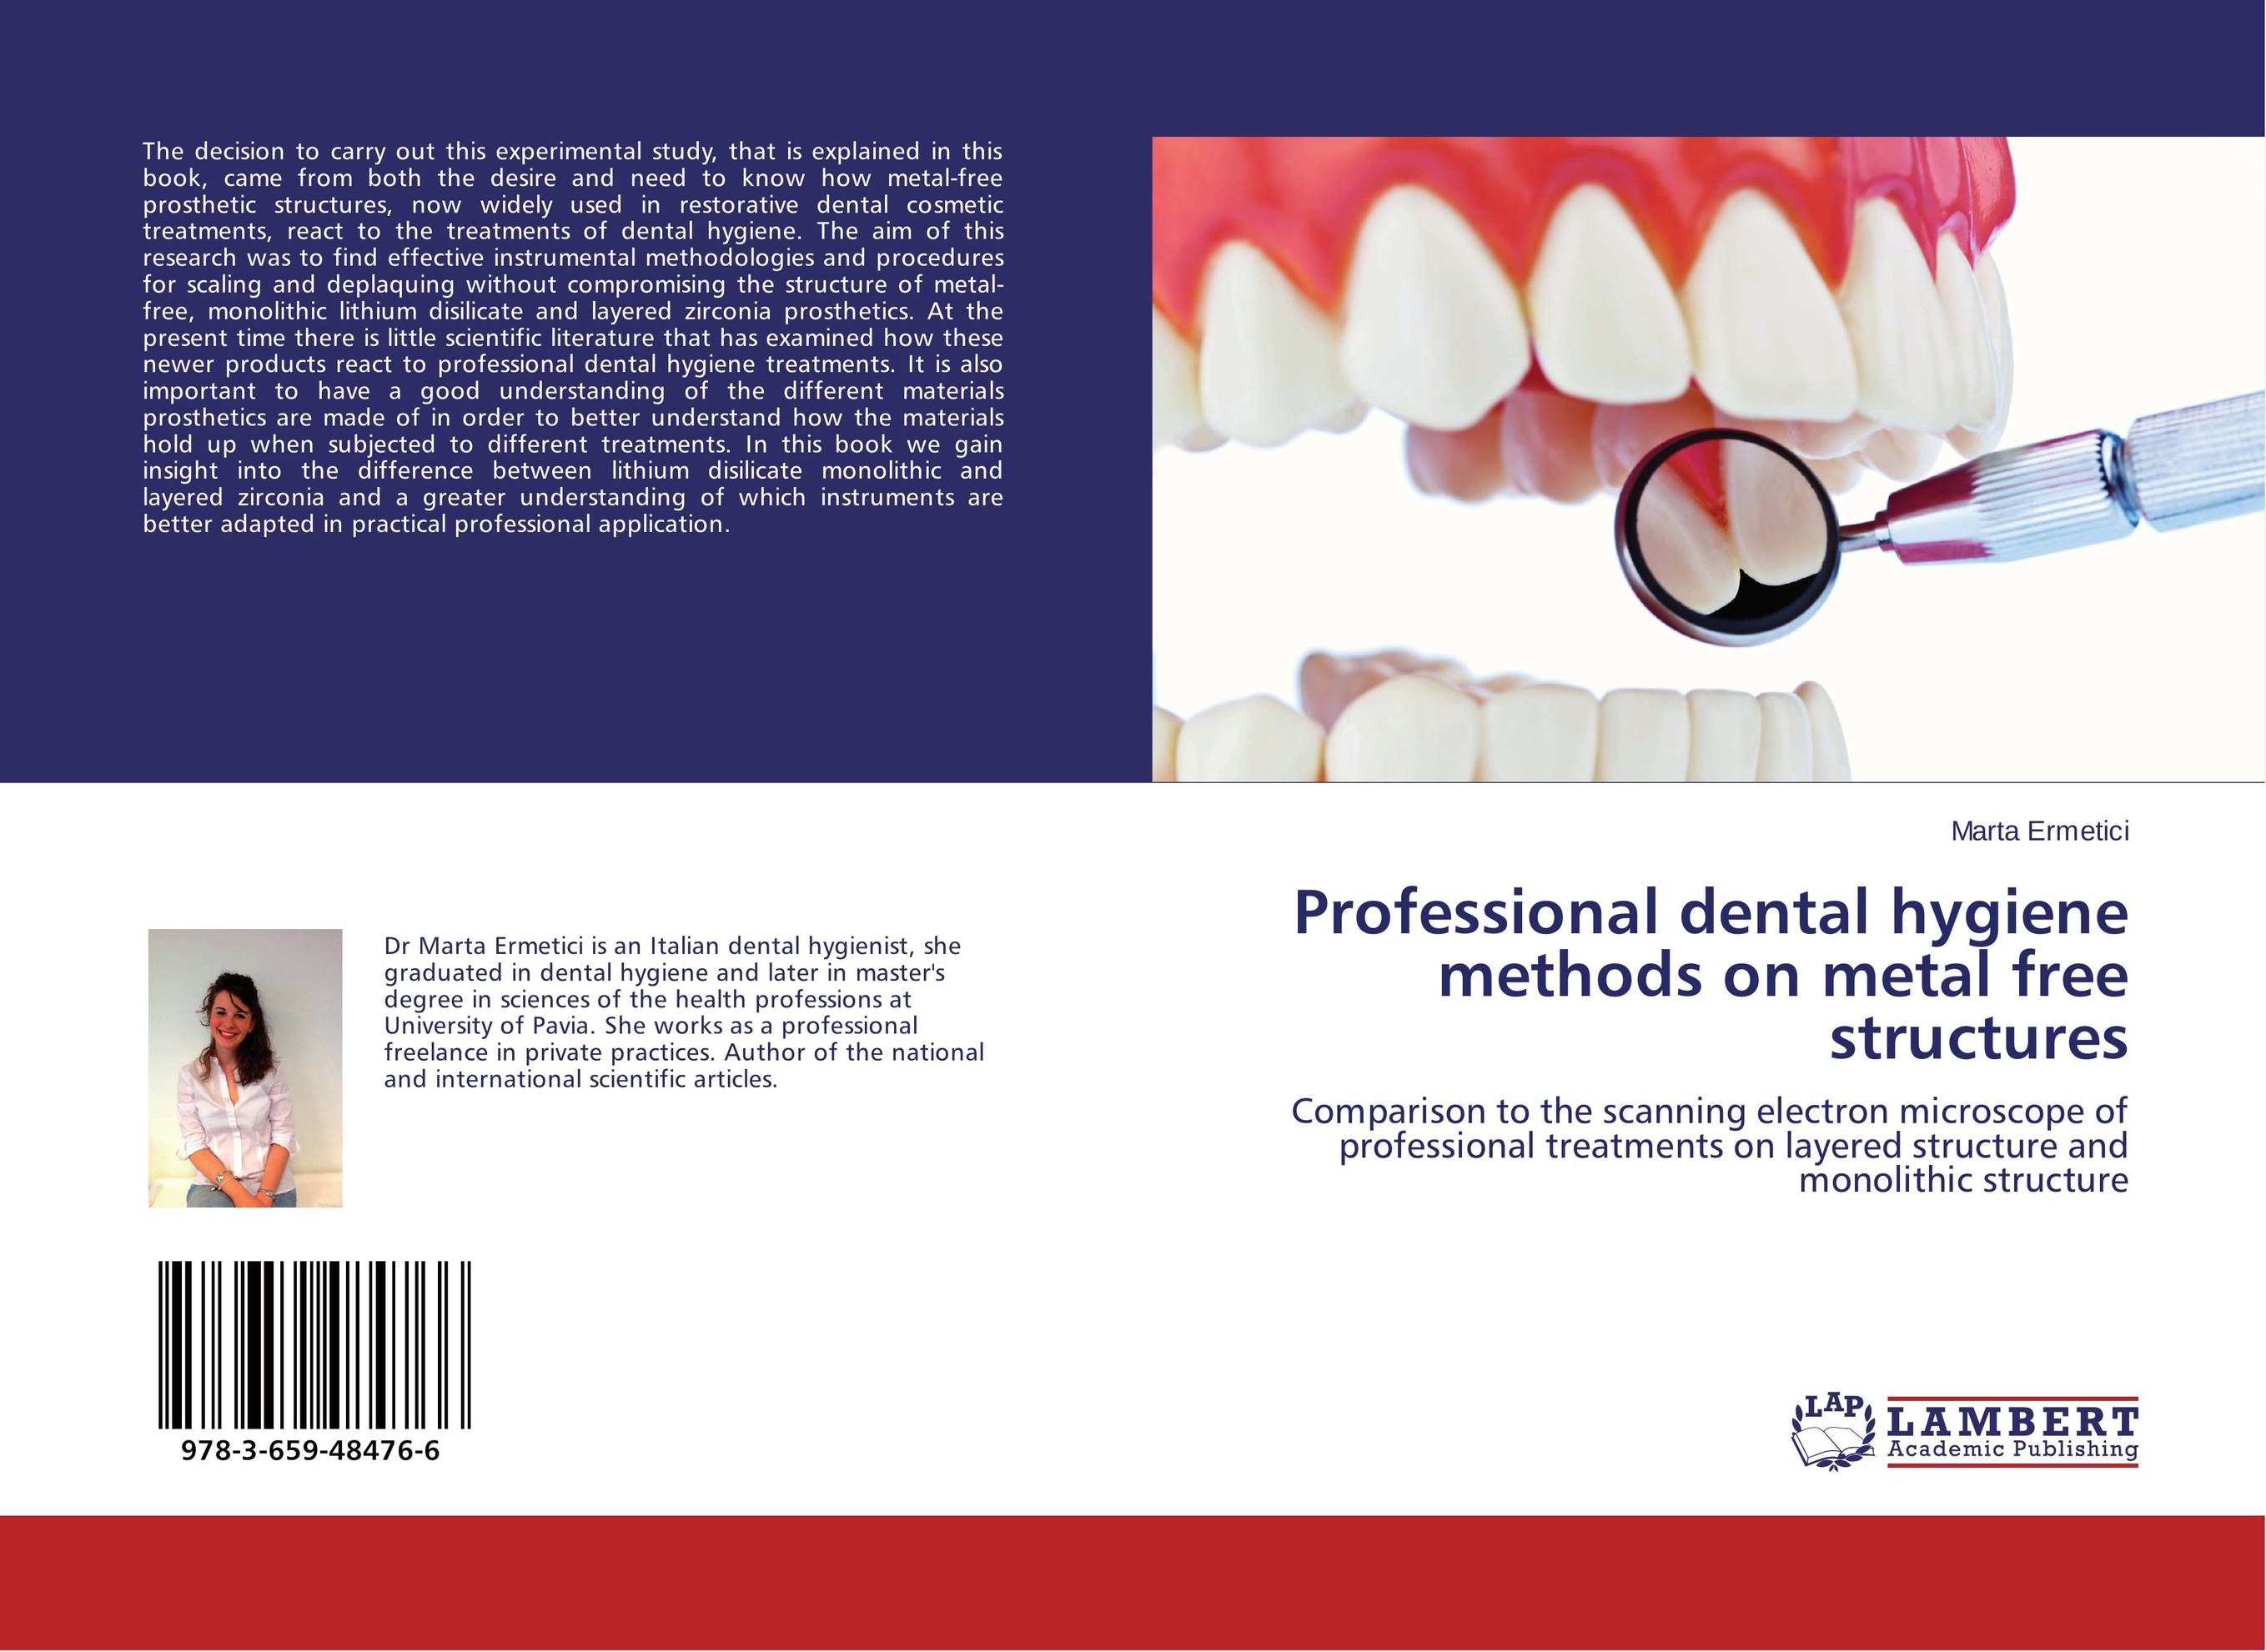 Professional dental hygiene methods on metal free structures